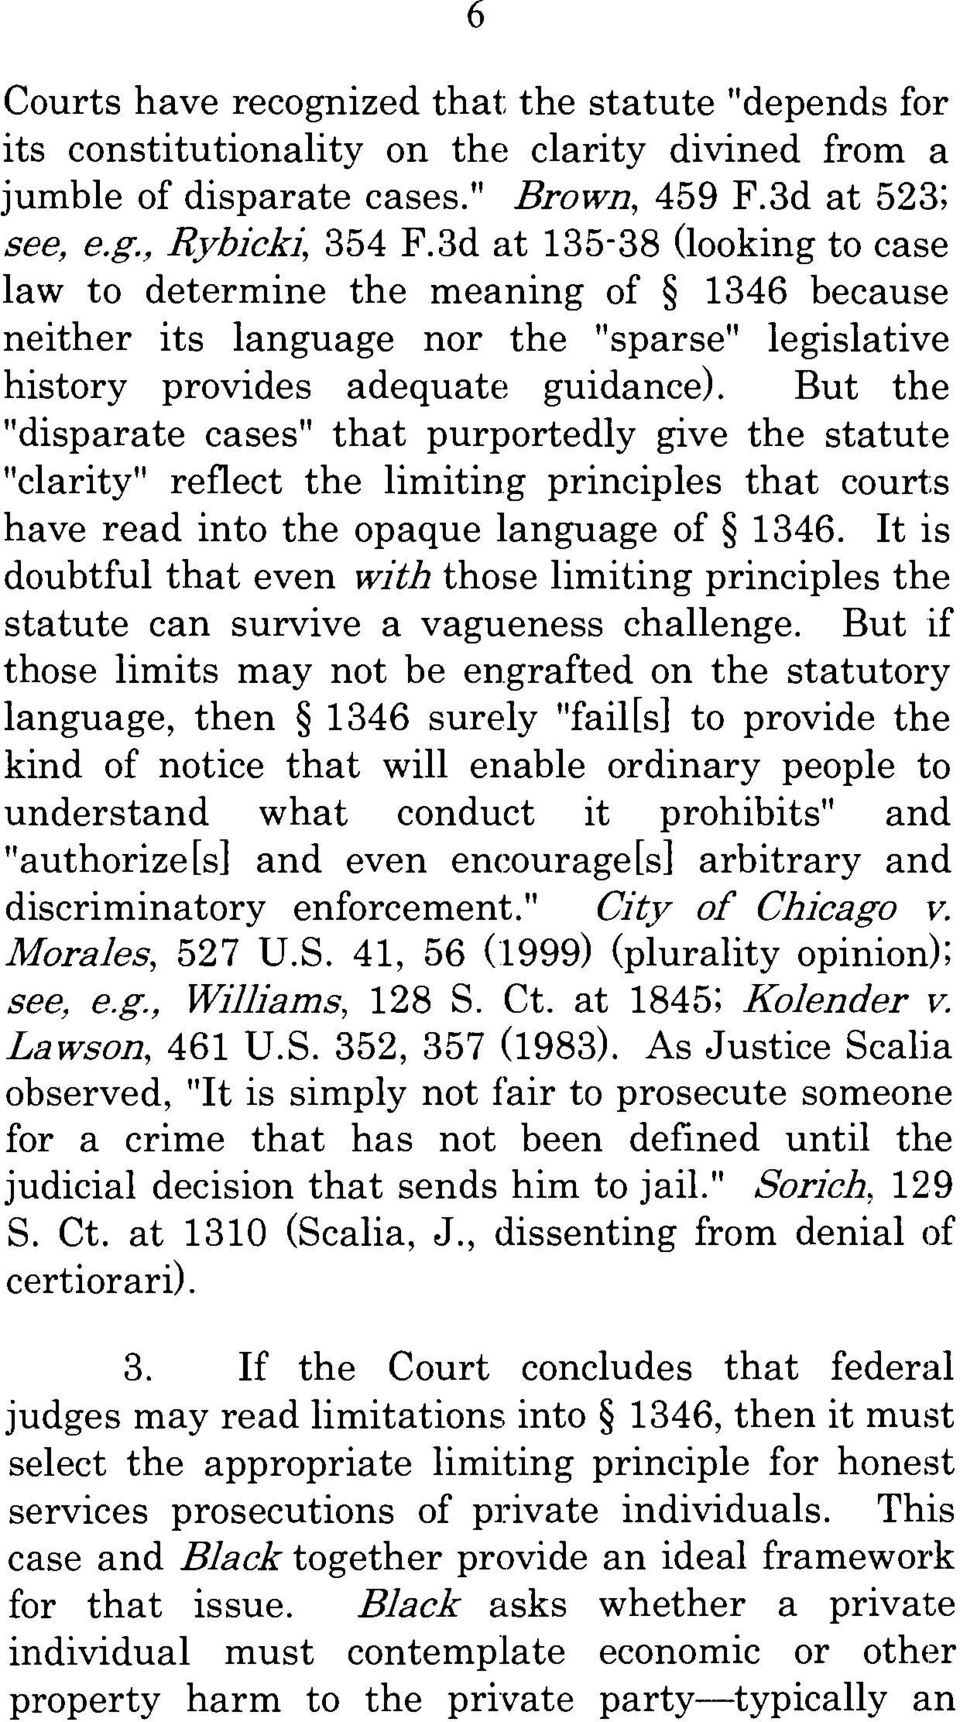 "But the ""disparate cases"" that purportedly give the statute ""clarity"" reflect the limiting principles that courts have read into the opaque language of 1346."